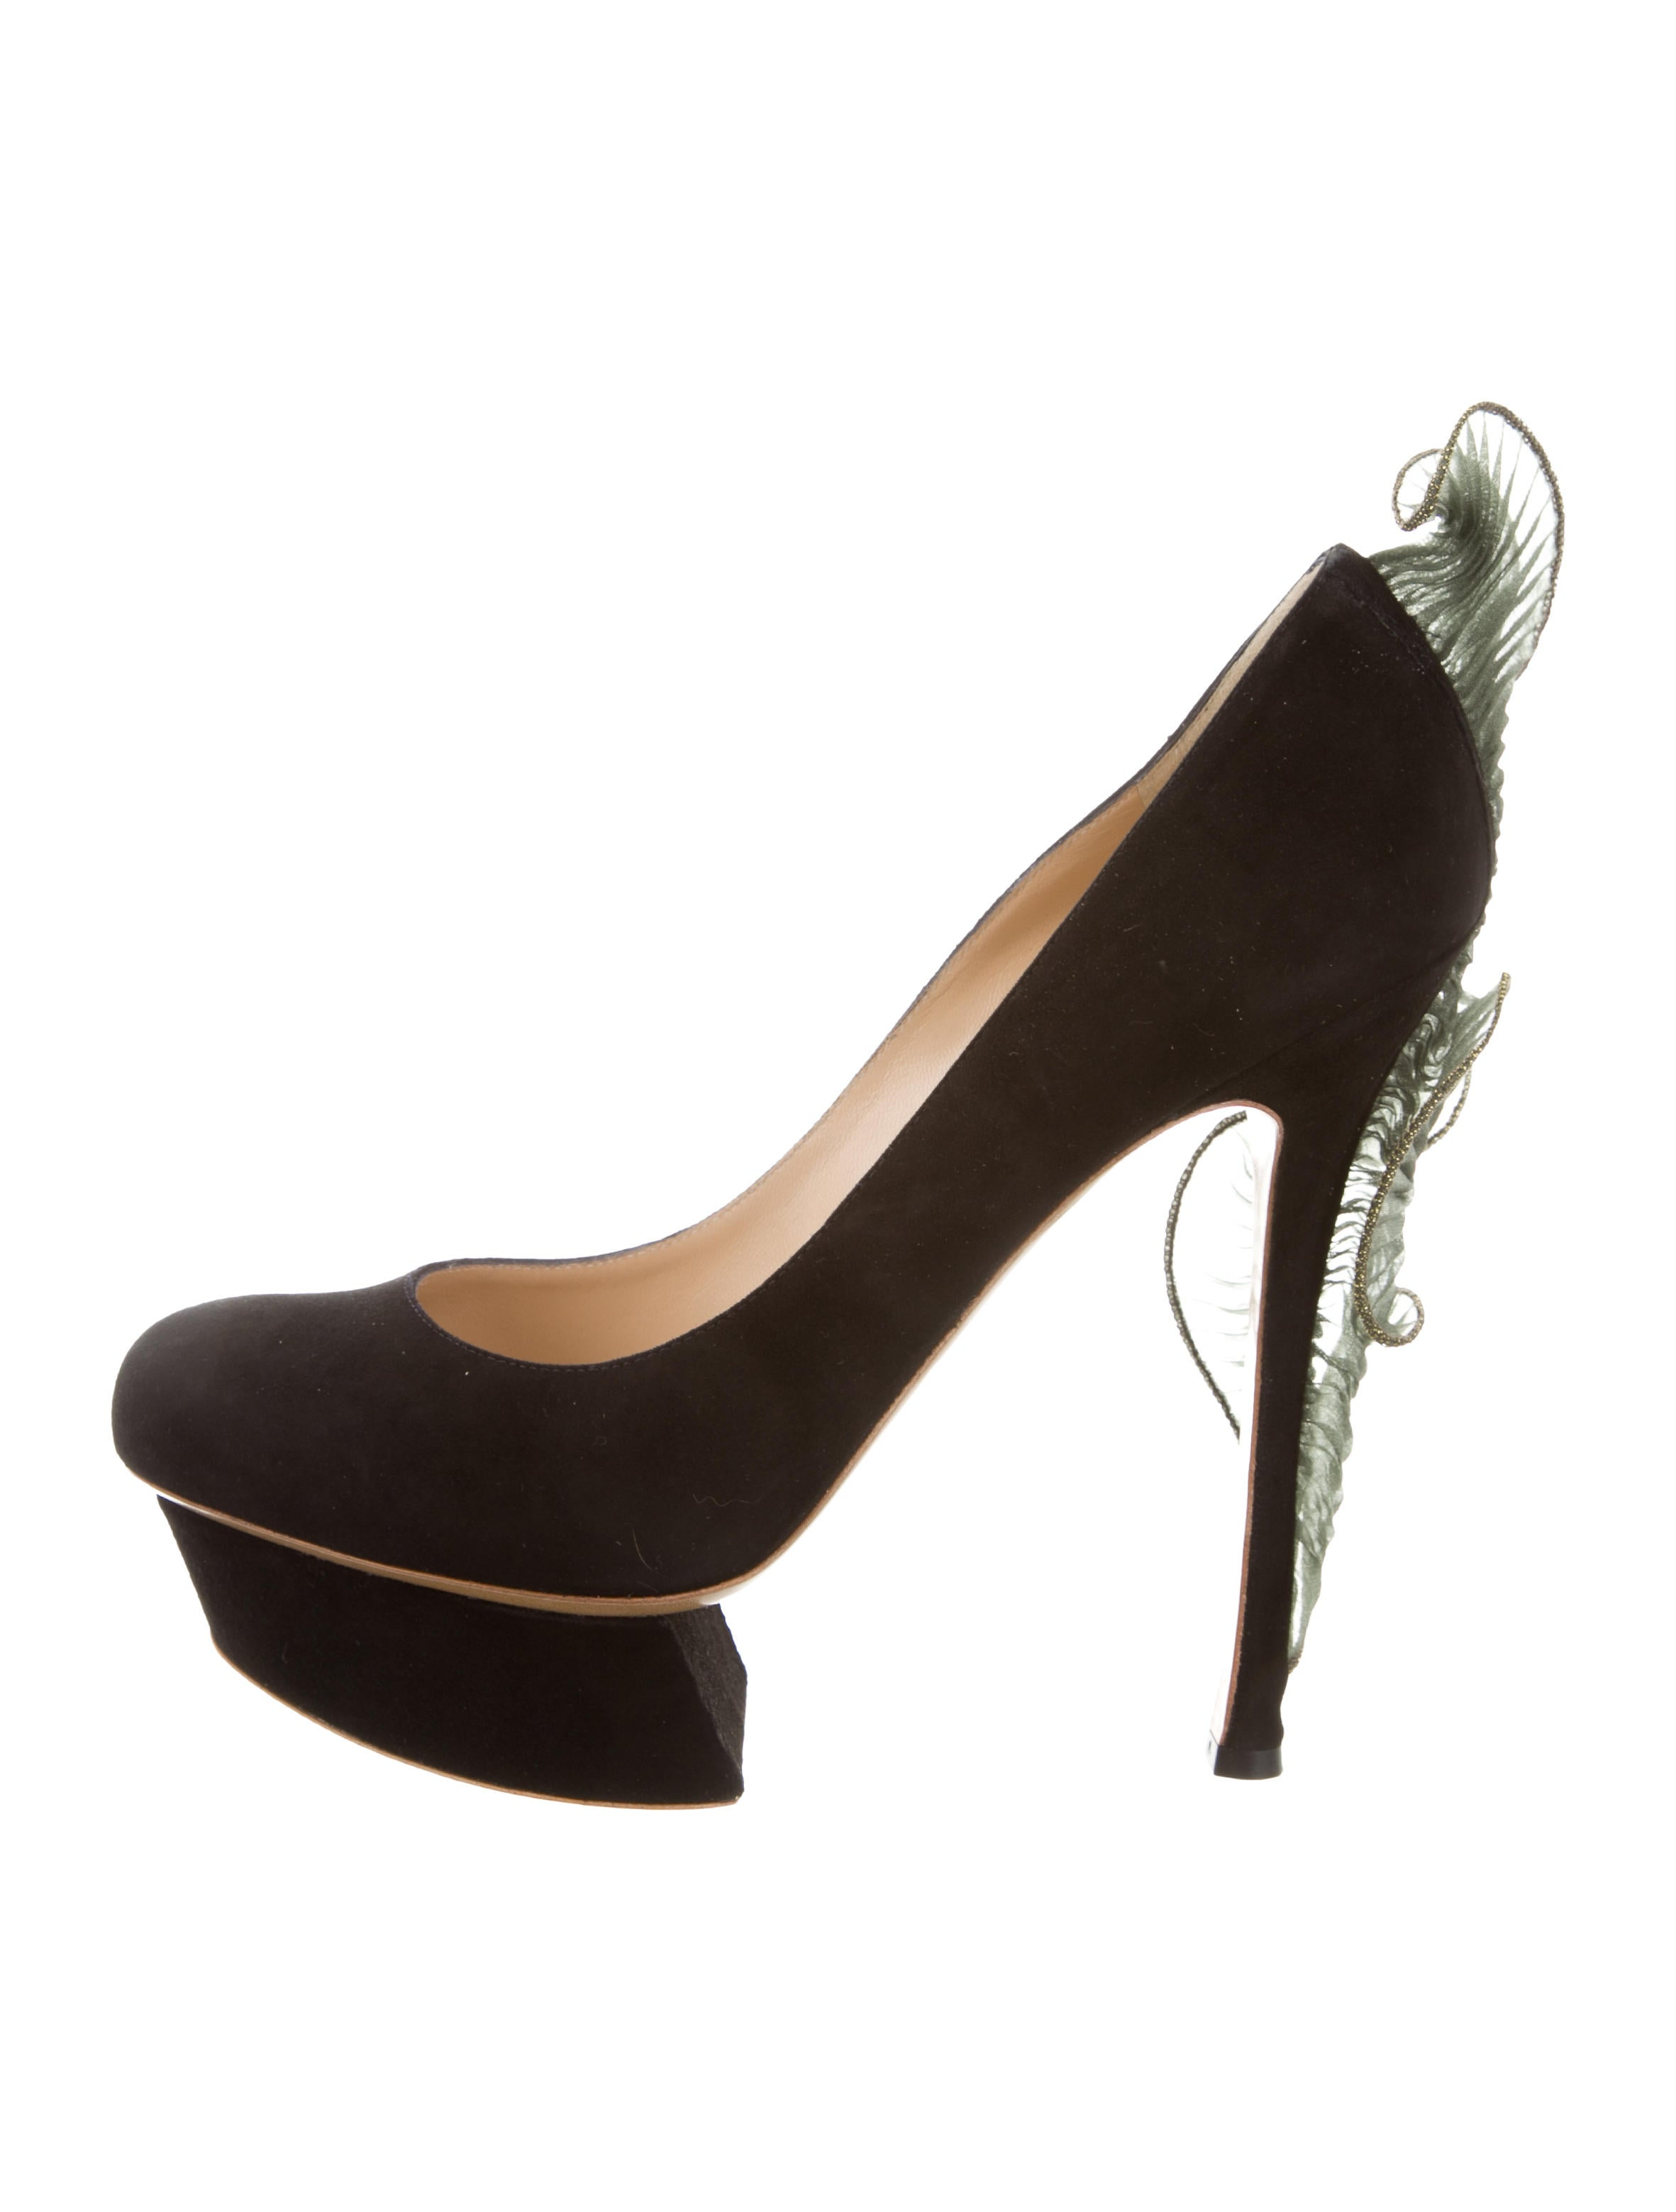 free shipping websites Nicholas Kirkwood Ruffled Suede Platform Pumps huge surprise buy cheap purchase wholesale price cheap sale pay with paypal gnVA3